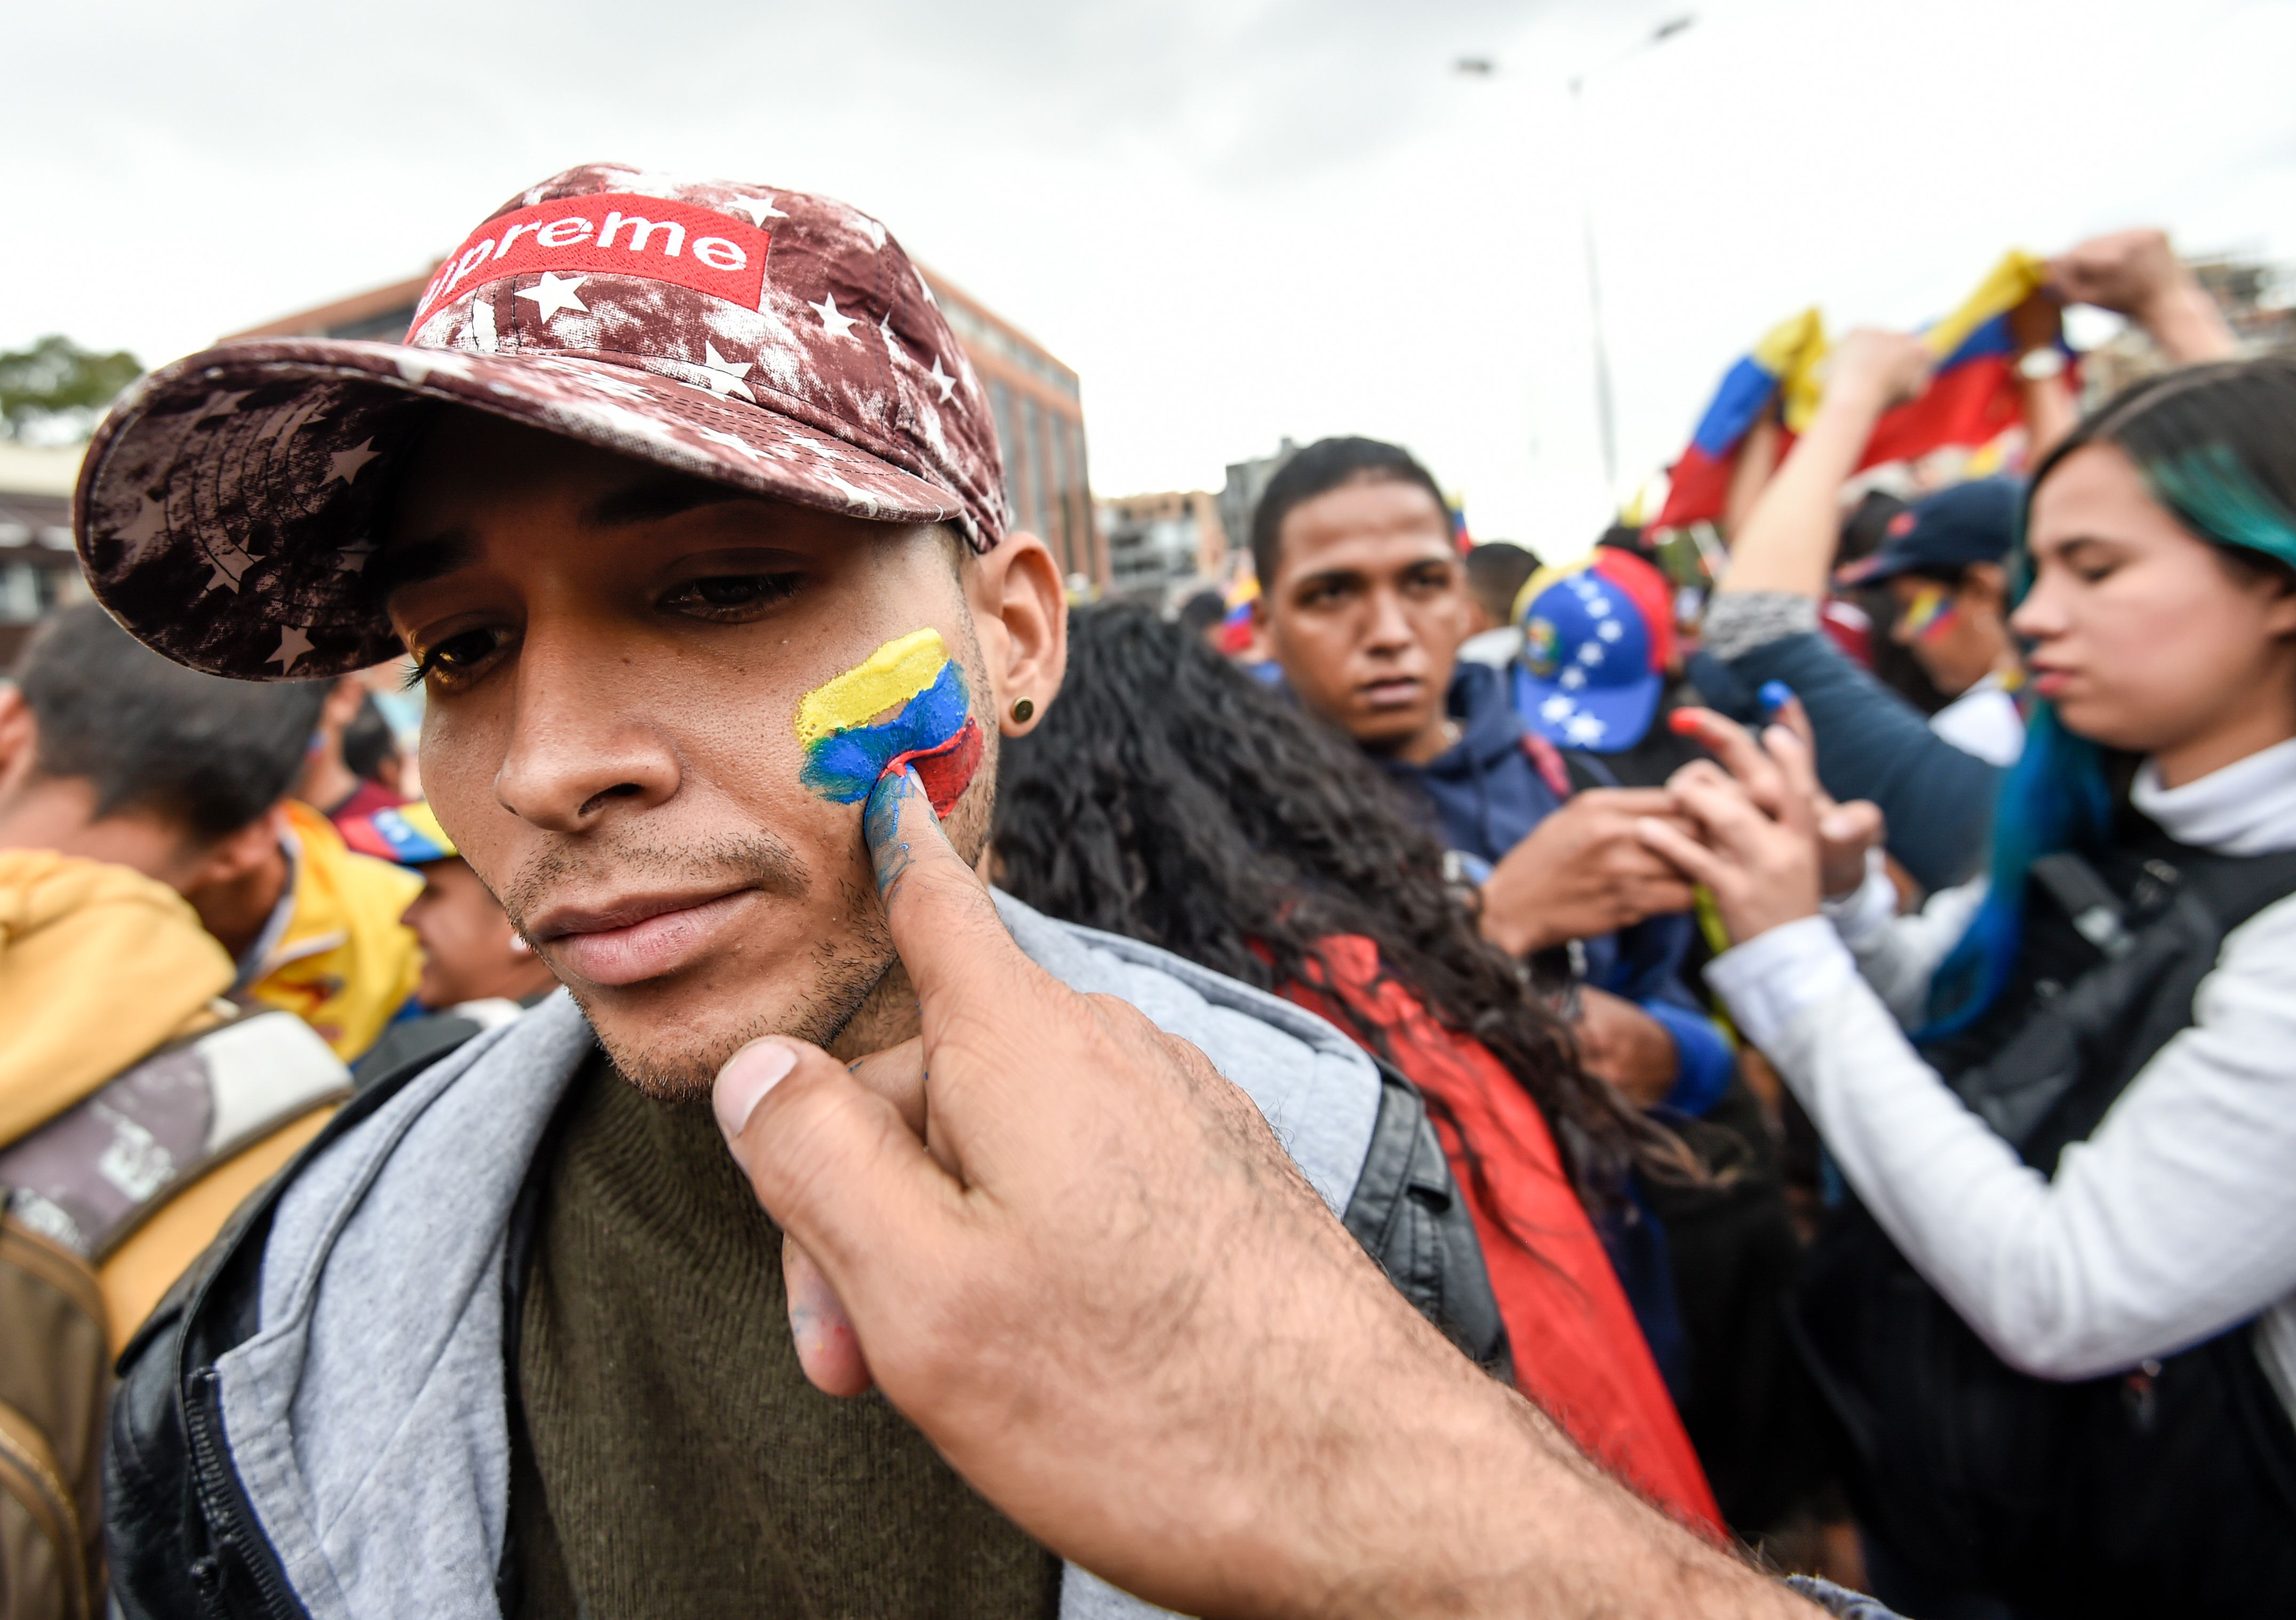 Venezuelans opposed to President Nicolas Maduro hold a demonstration in Bogota, Colombia in support of opposition leader Juan Guaido's self-proclamation as acting president of Venezuela, on January 23, 2019. (Photo by Juan BARRETO / AFP) (Photo credit should read JUAN BARRETO/AFP/Getty Images)